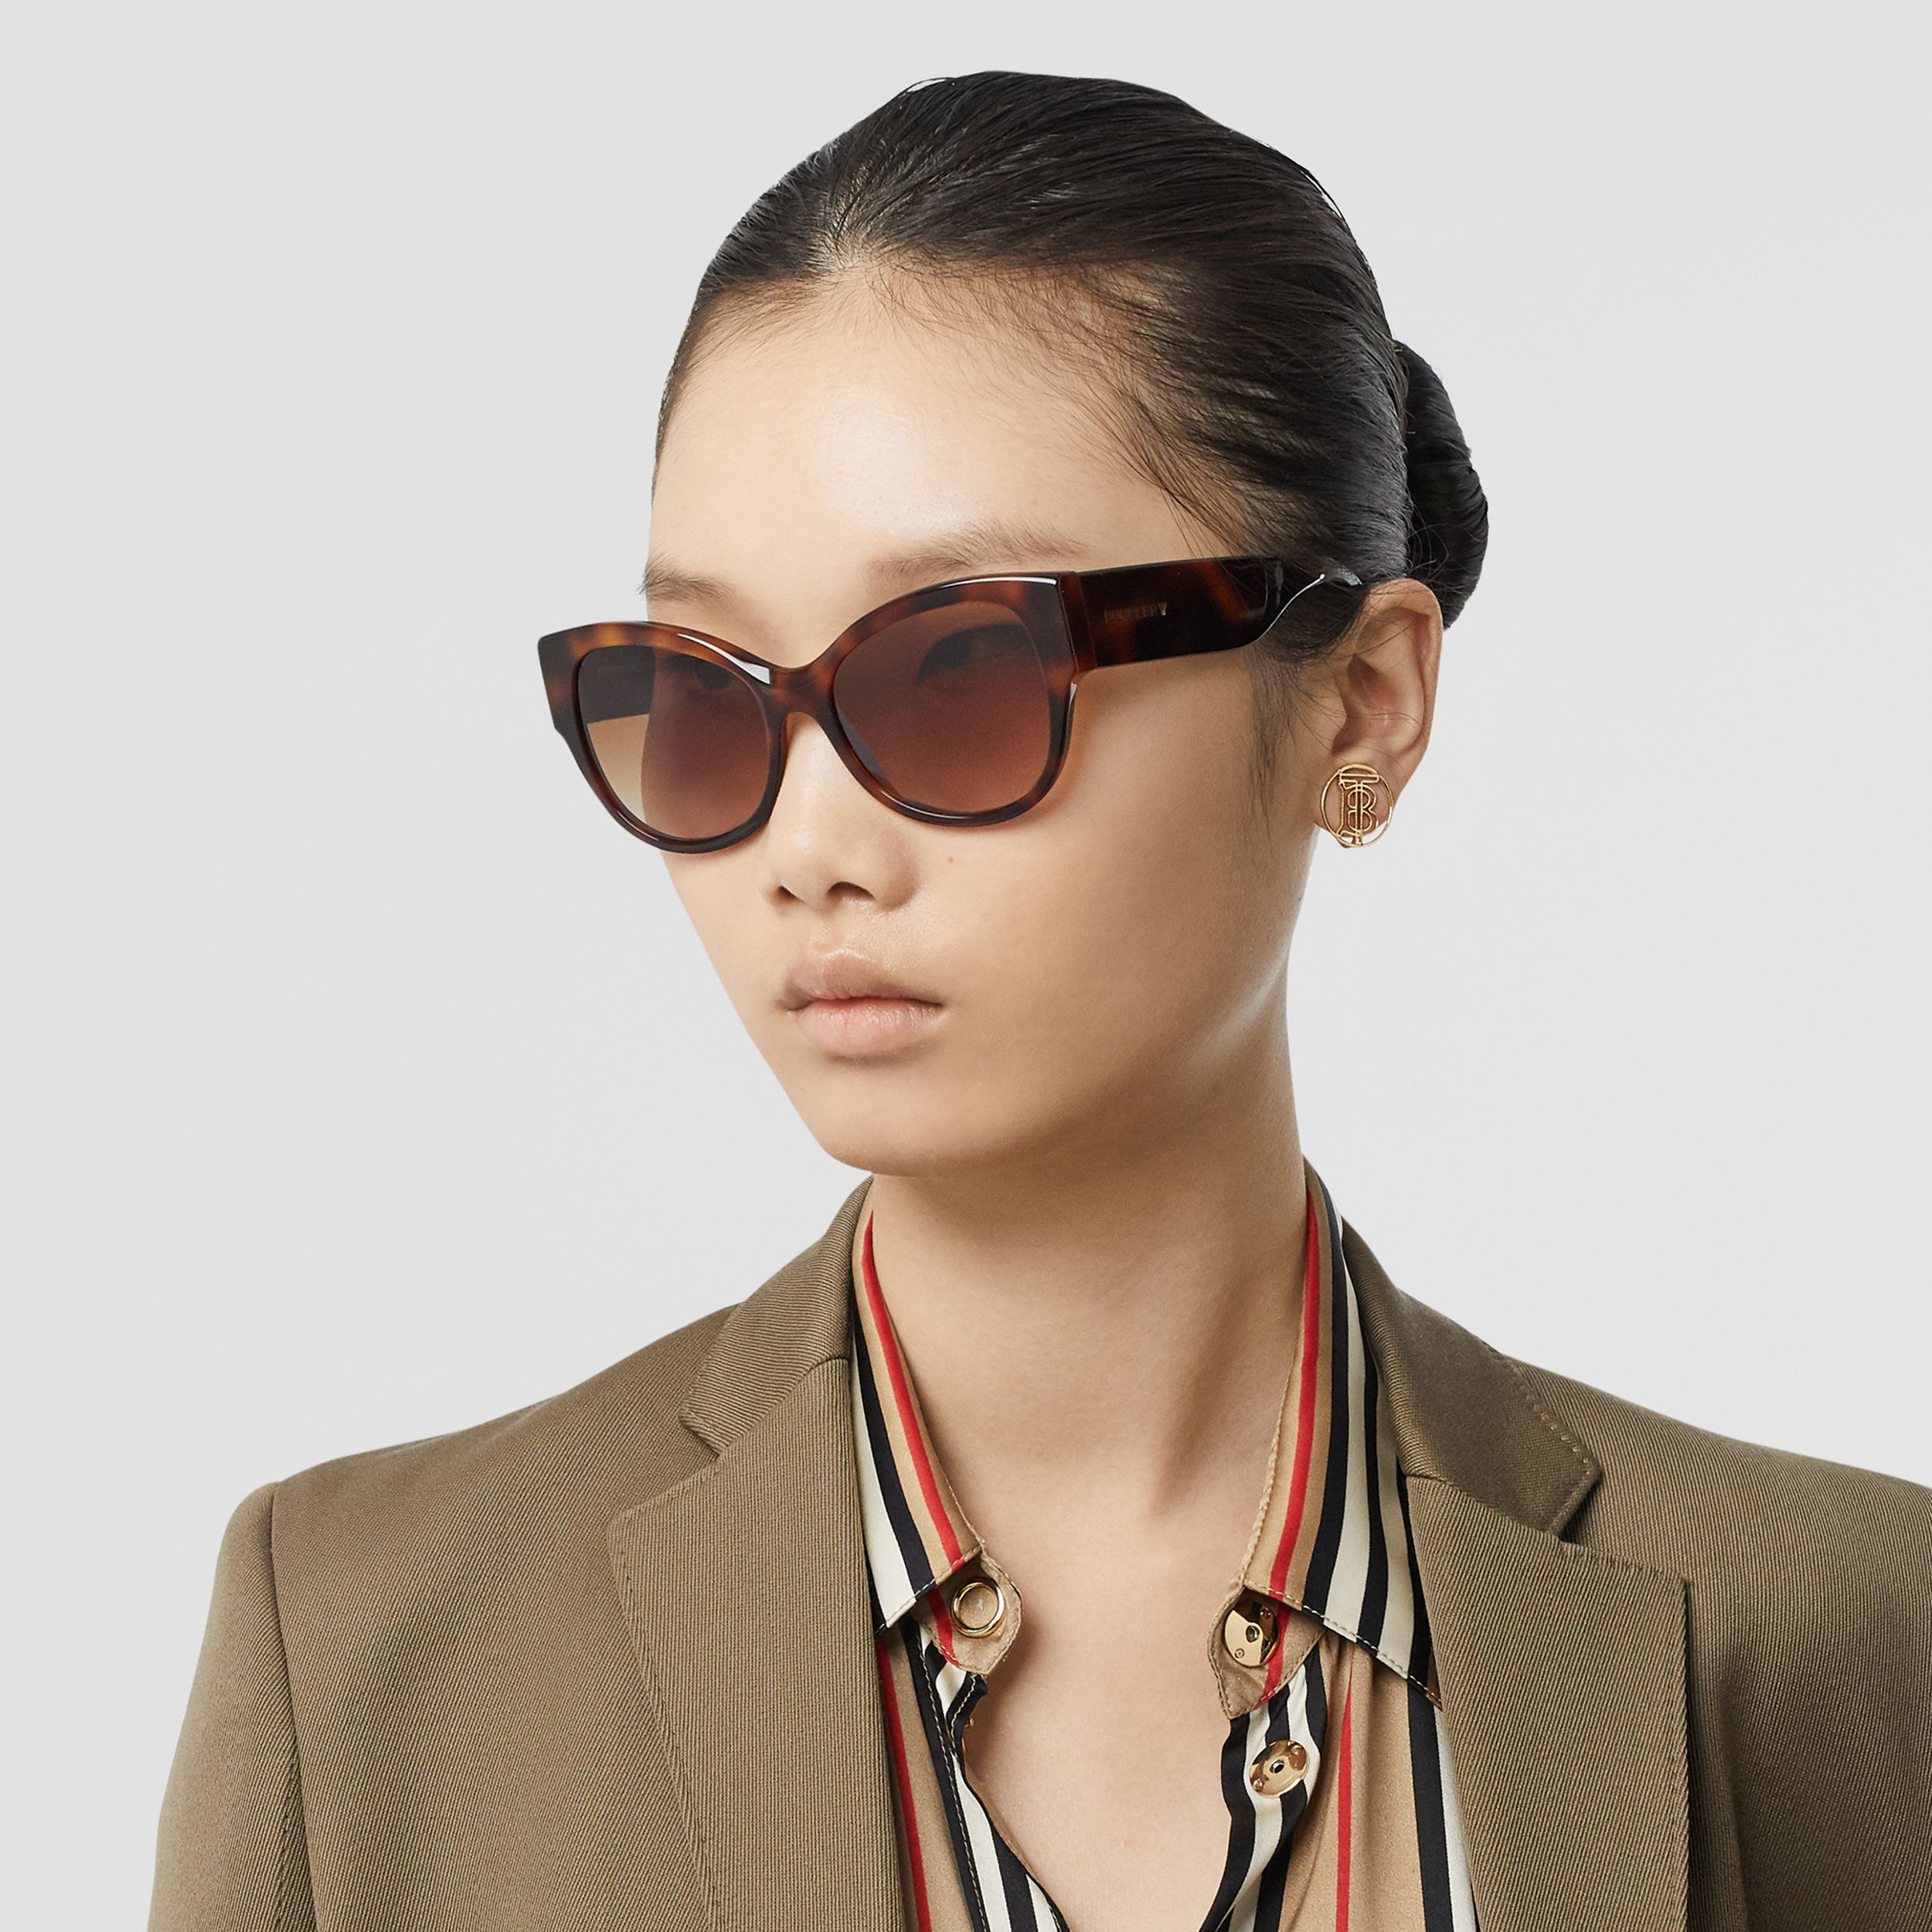 Butterfly Frame Sunglasses in Amber Tortoiseshell - Women | Burberry Canada - 3